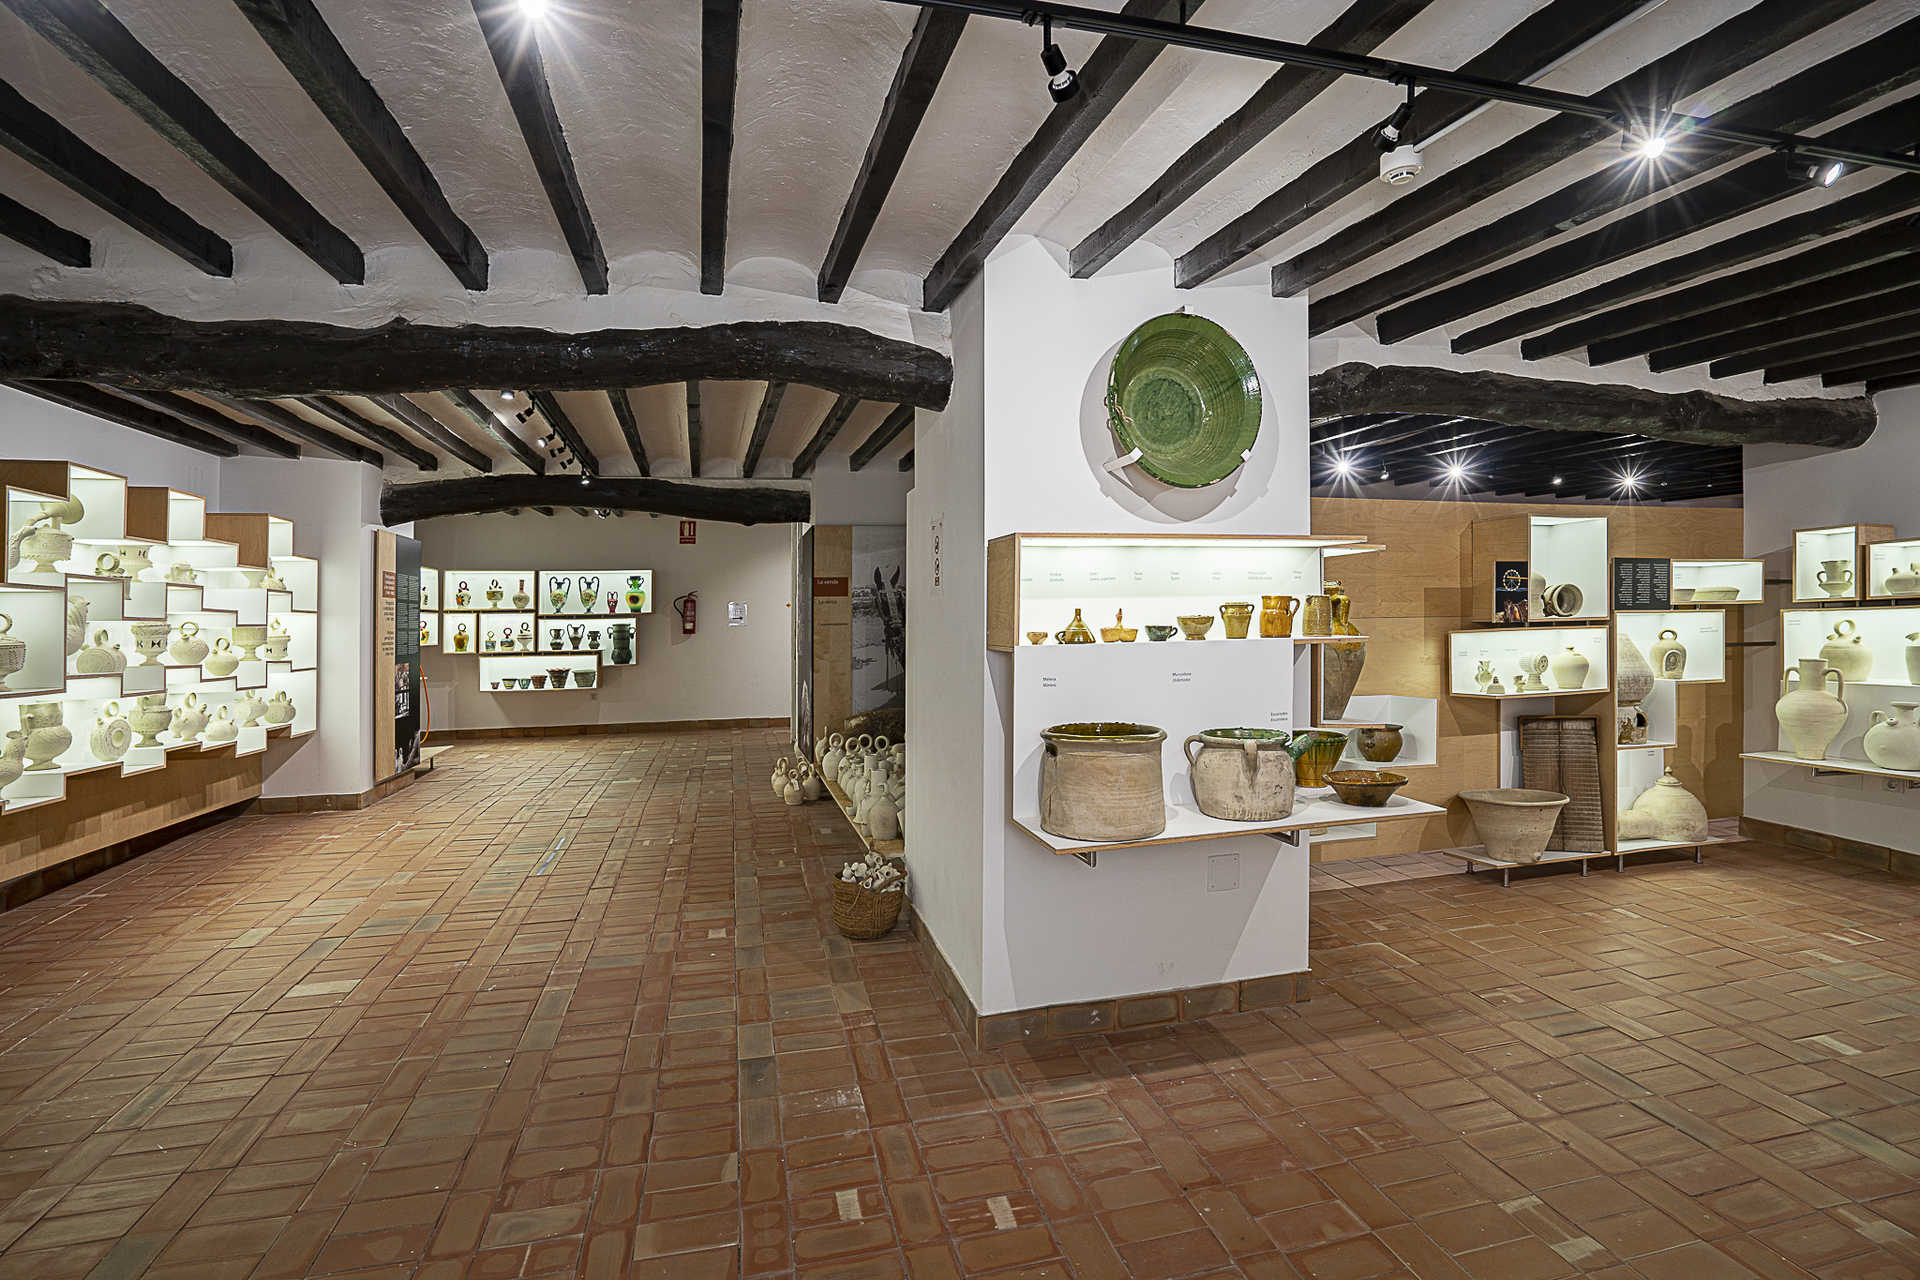 The Pottery Museum of Agost